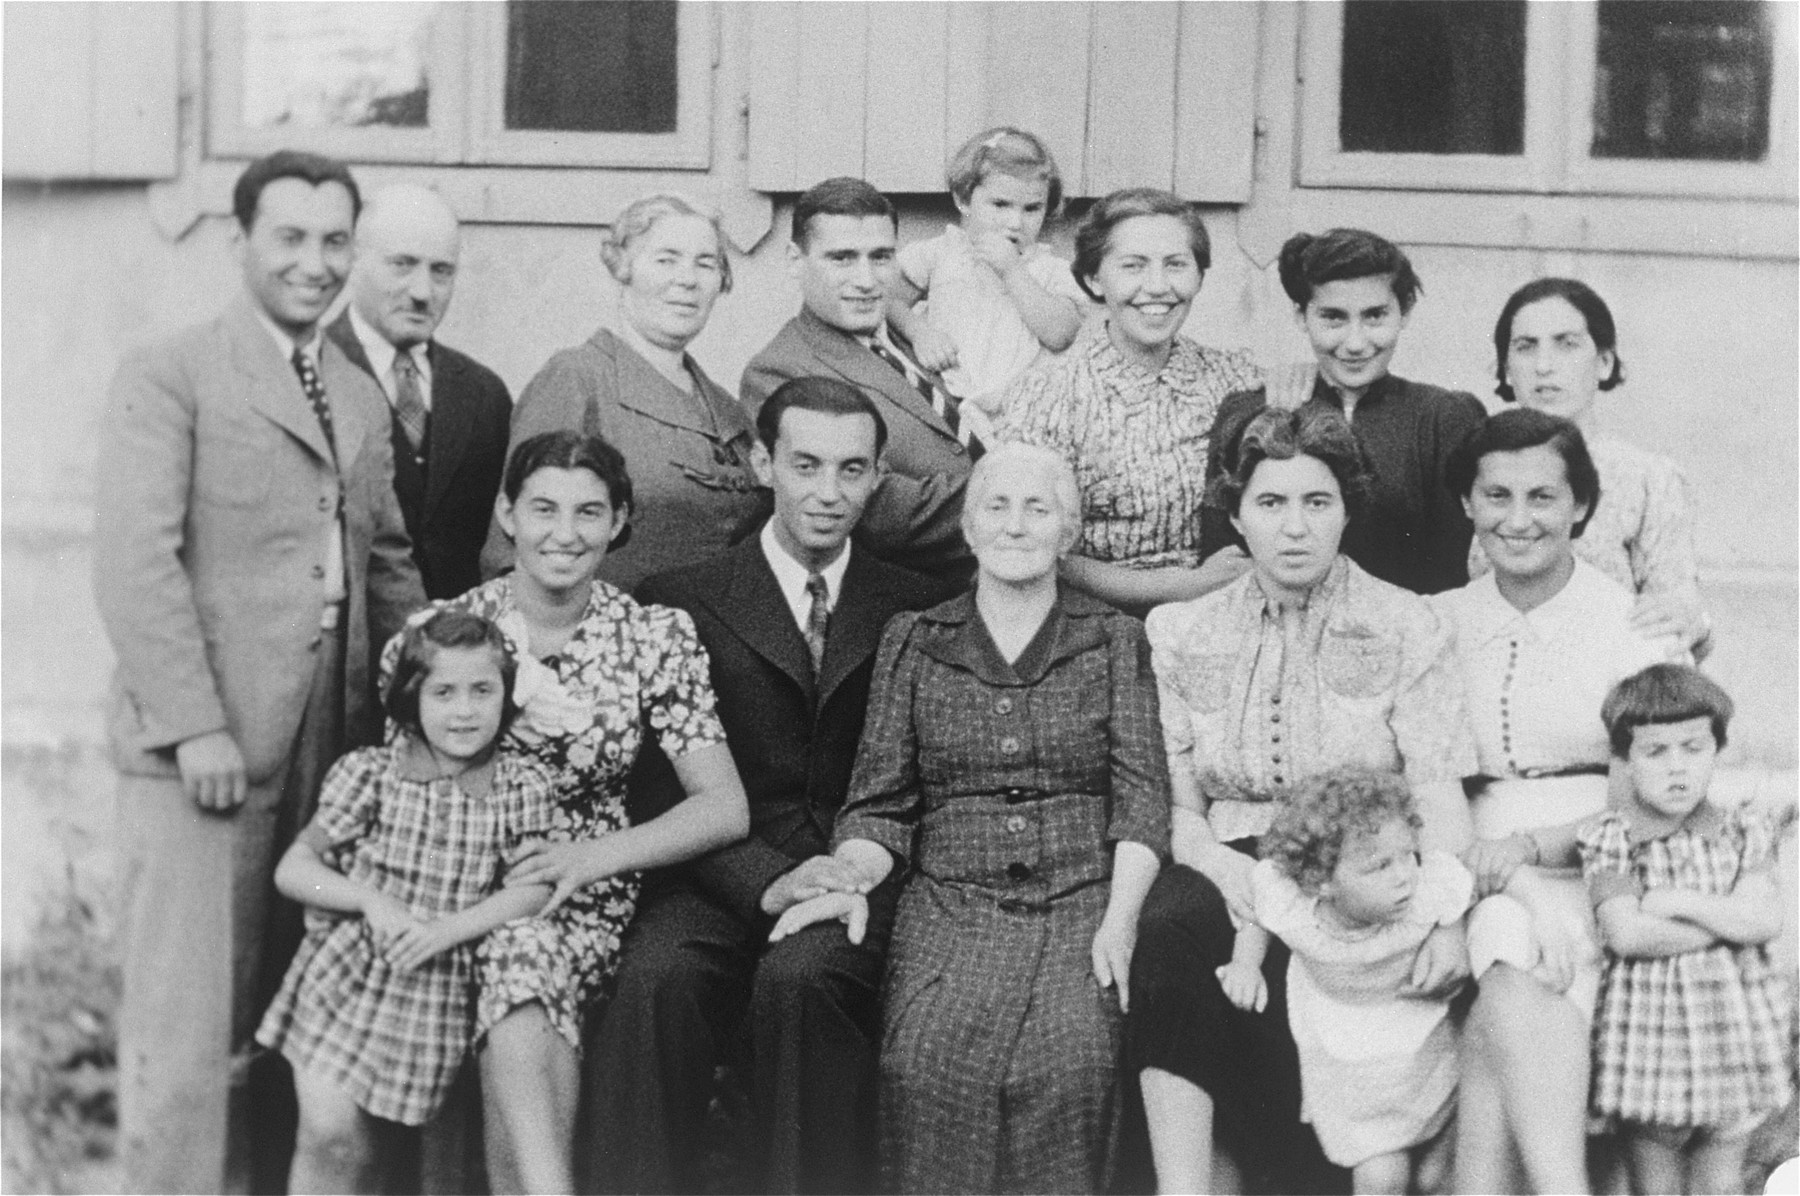 Portrait of the extended Katz family in Vilna.    The photo was taken during their daughter Mina's visit from Montreal.  Among those pictured are Mina (Katz) Herman and her daughter, Audrey (front row, second from the right), Itzik Katz, Mina's brother (standing at the far left) and Malka Katz, Mina's mother (front row, center).